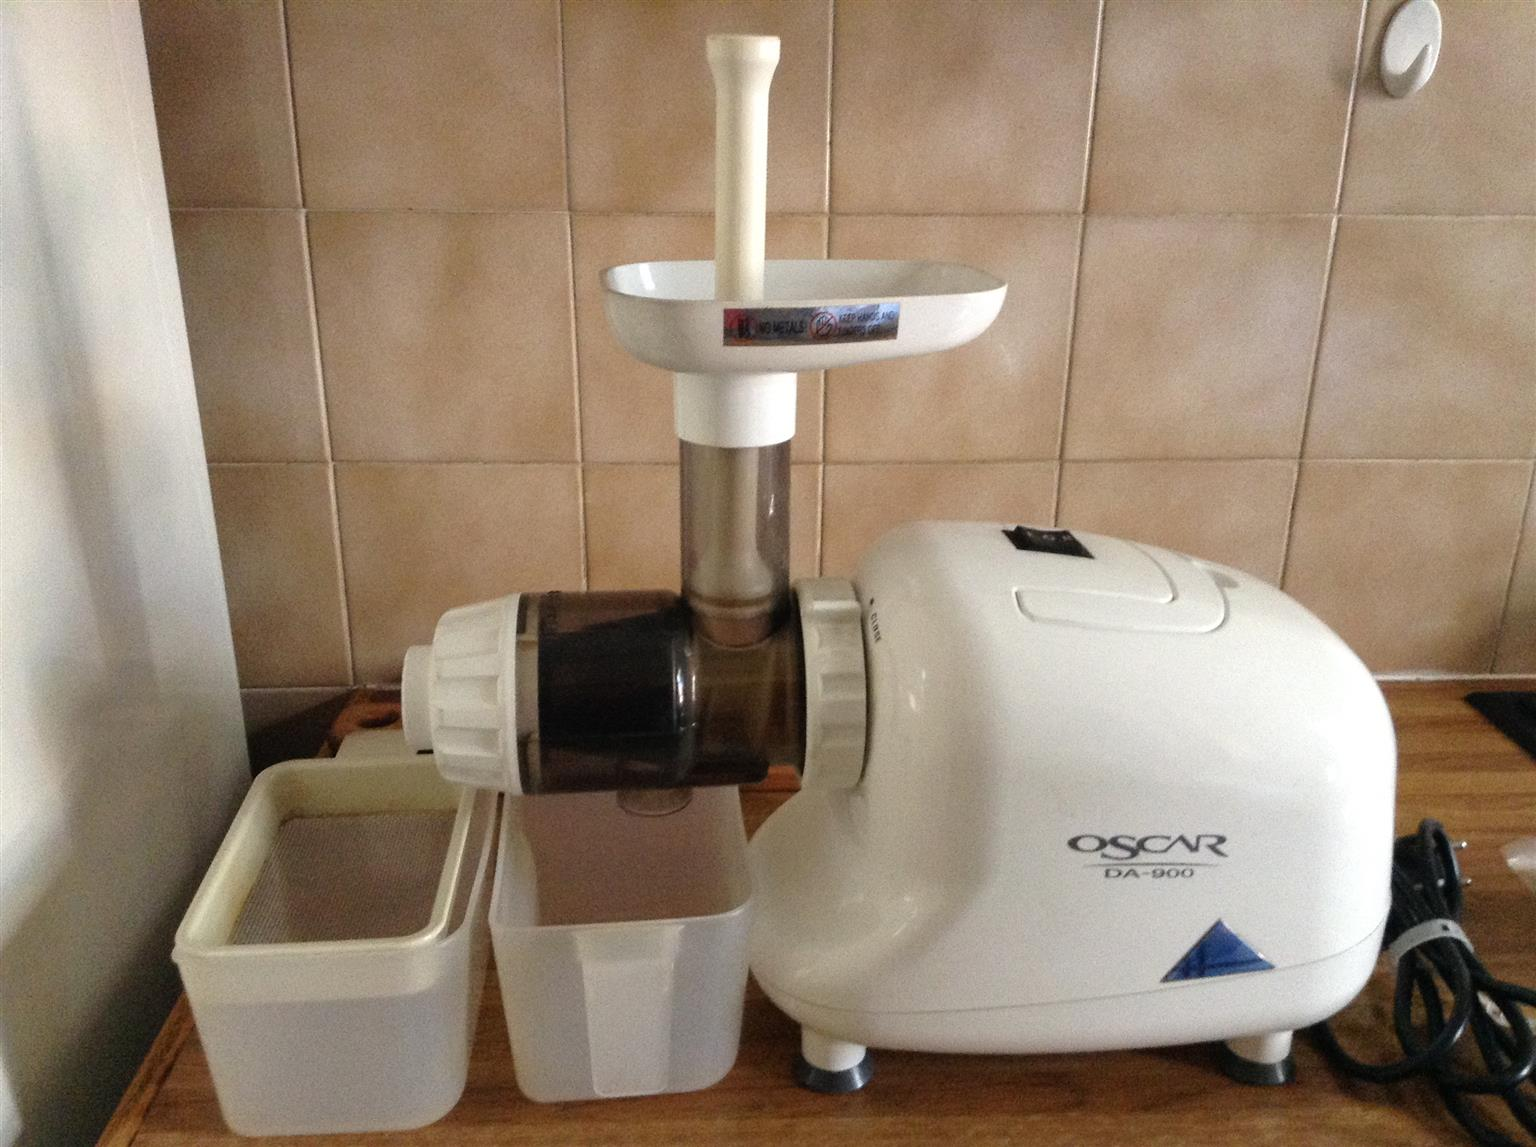 Oscar DA-900 juicer and oil extractor